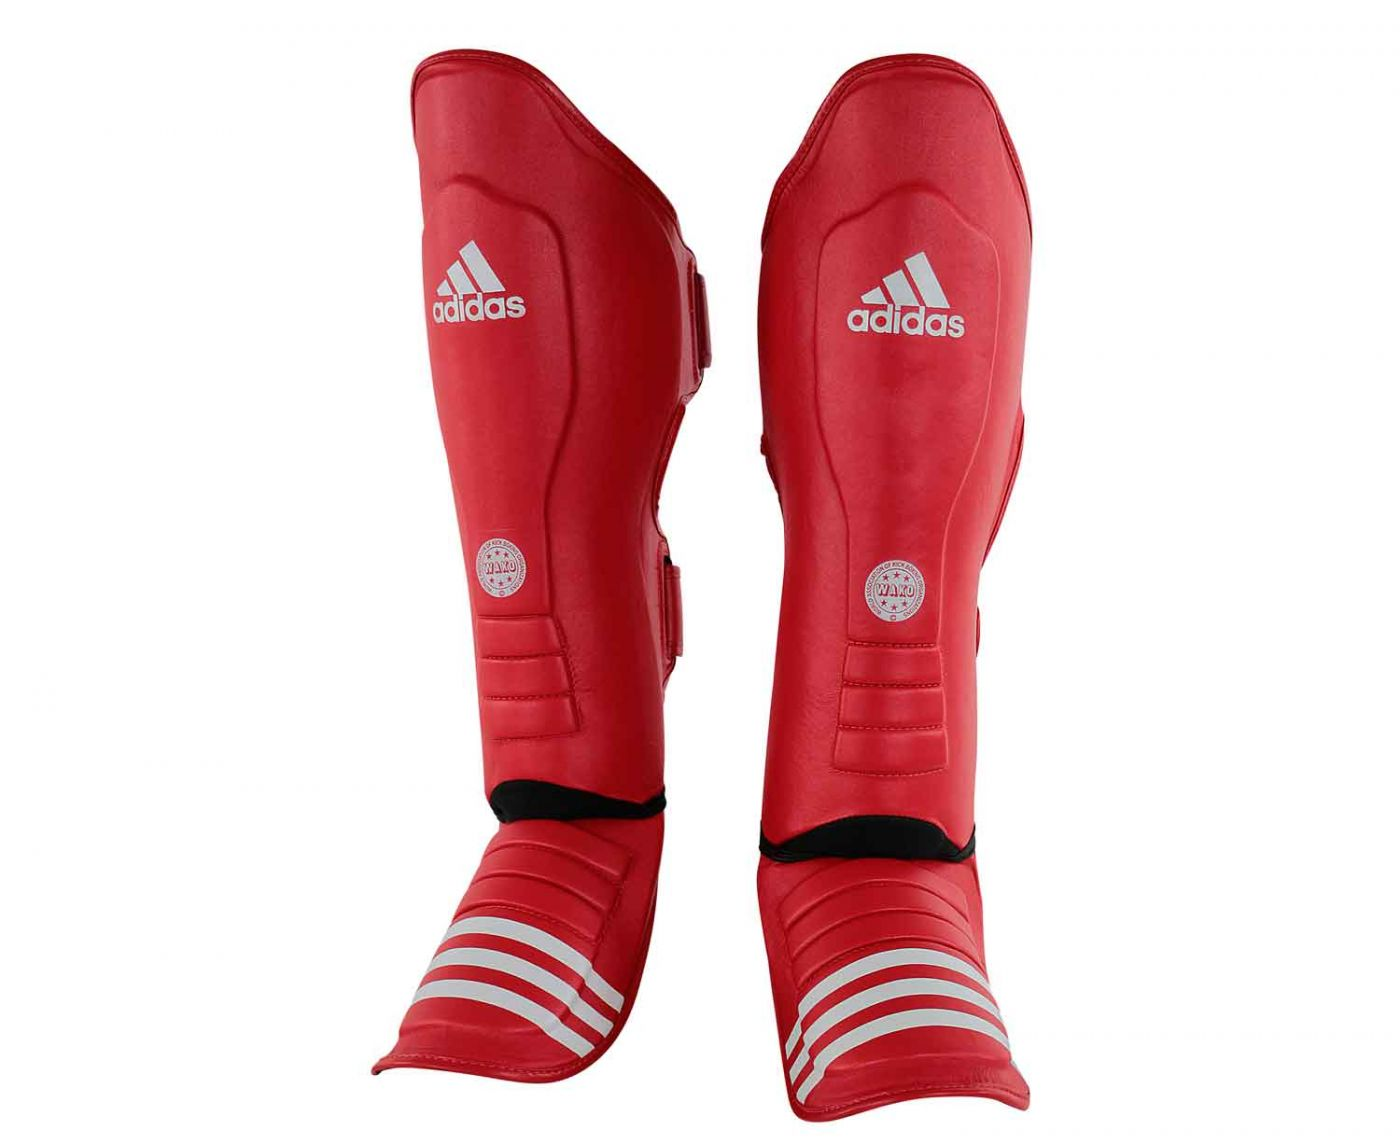 Защита голеностопа Adidas WAKO Super Pro Shin Instep Guards красная, размер XL, артикул adiWAKOGSS11